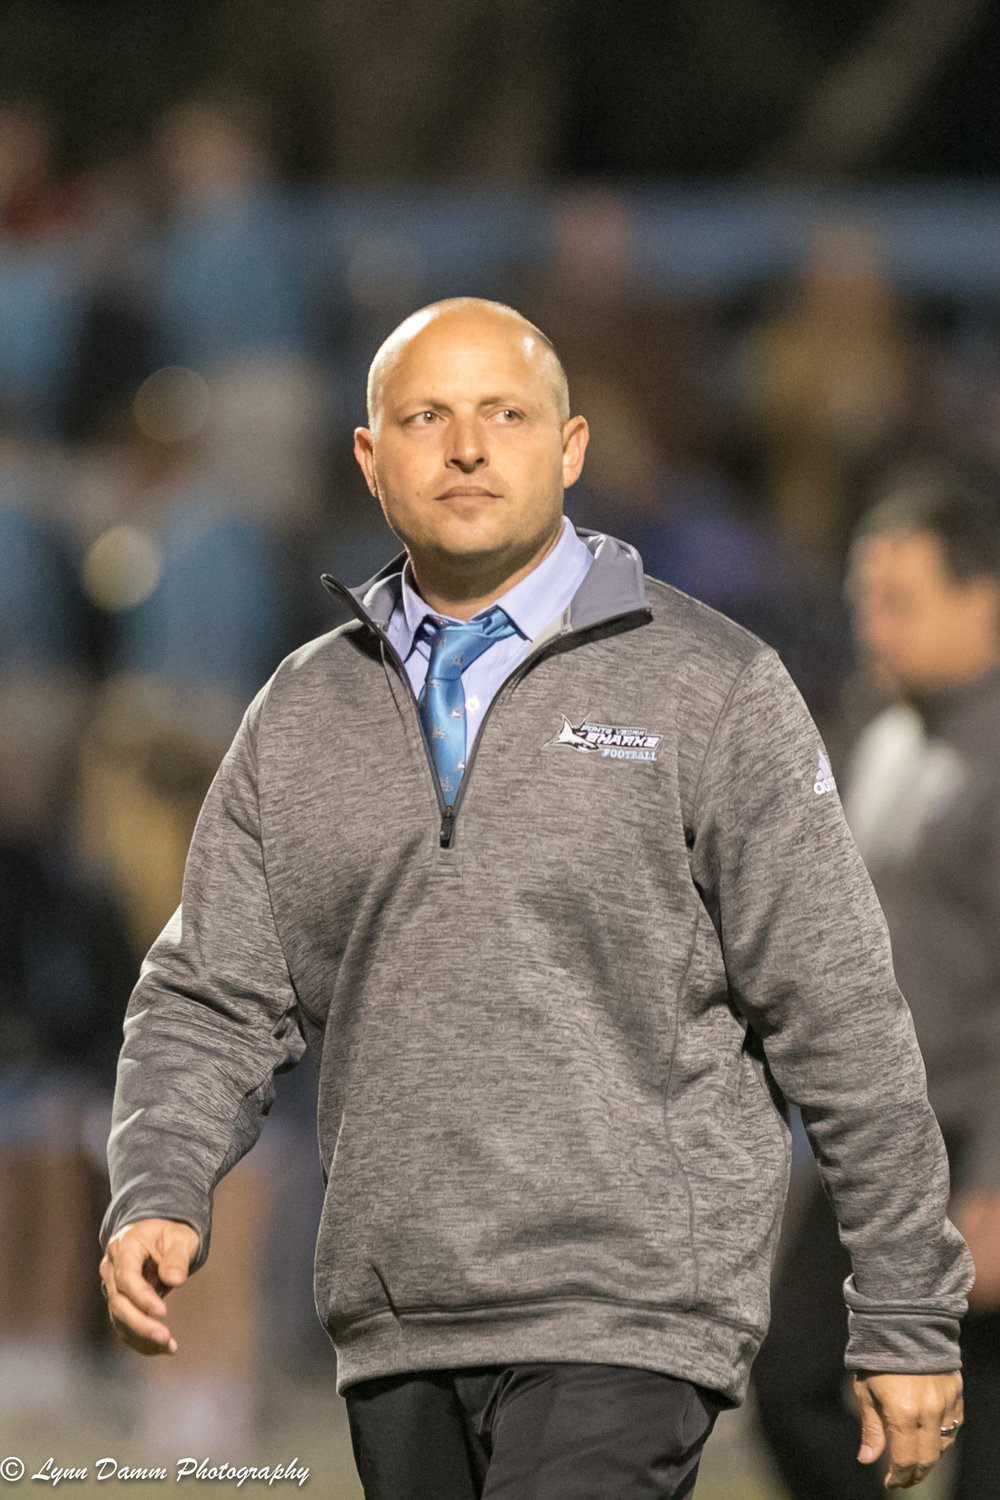 Football coach Matt Toblin is leaving Ponte Vedra after five seasons to take the head coaching job at Bolles.